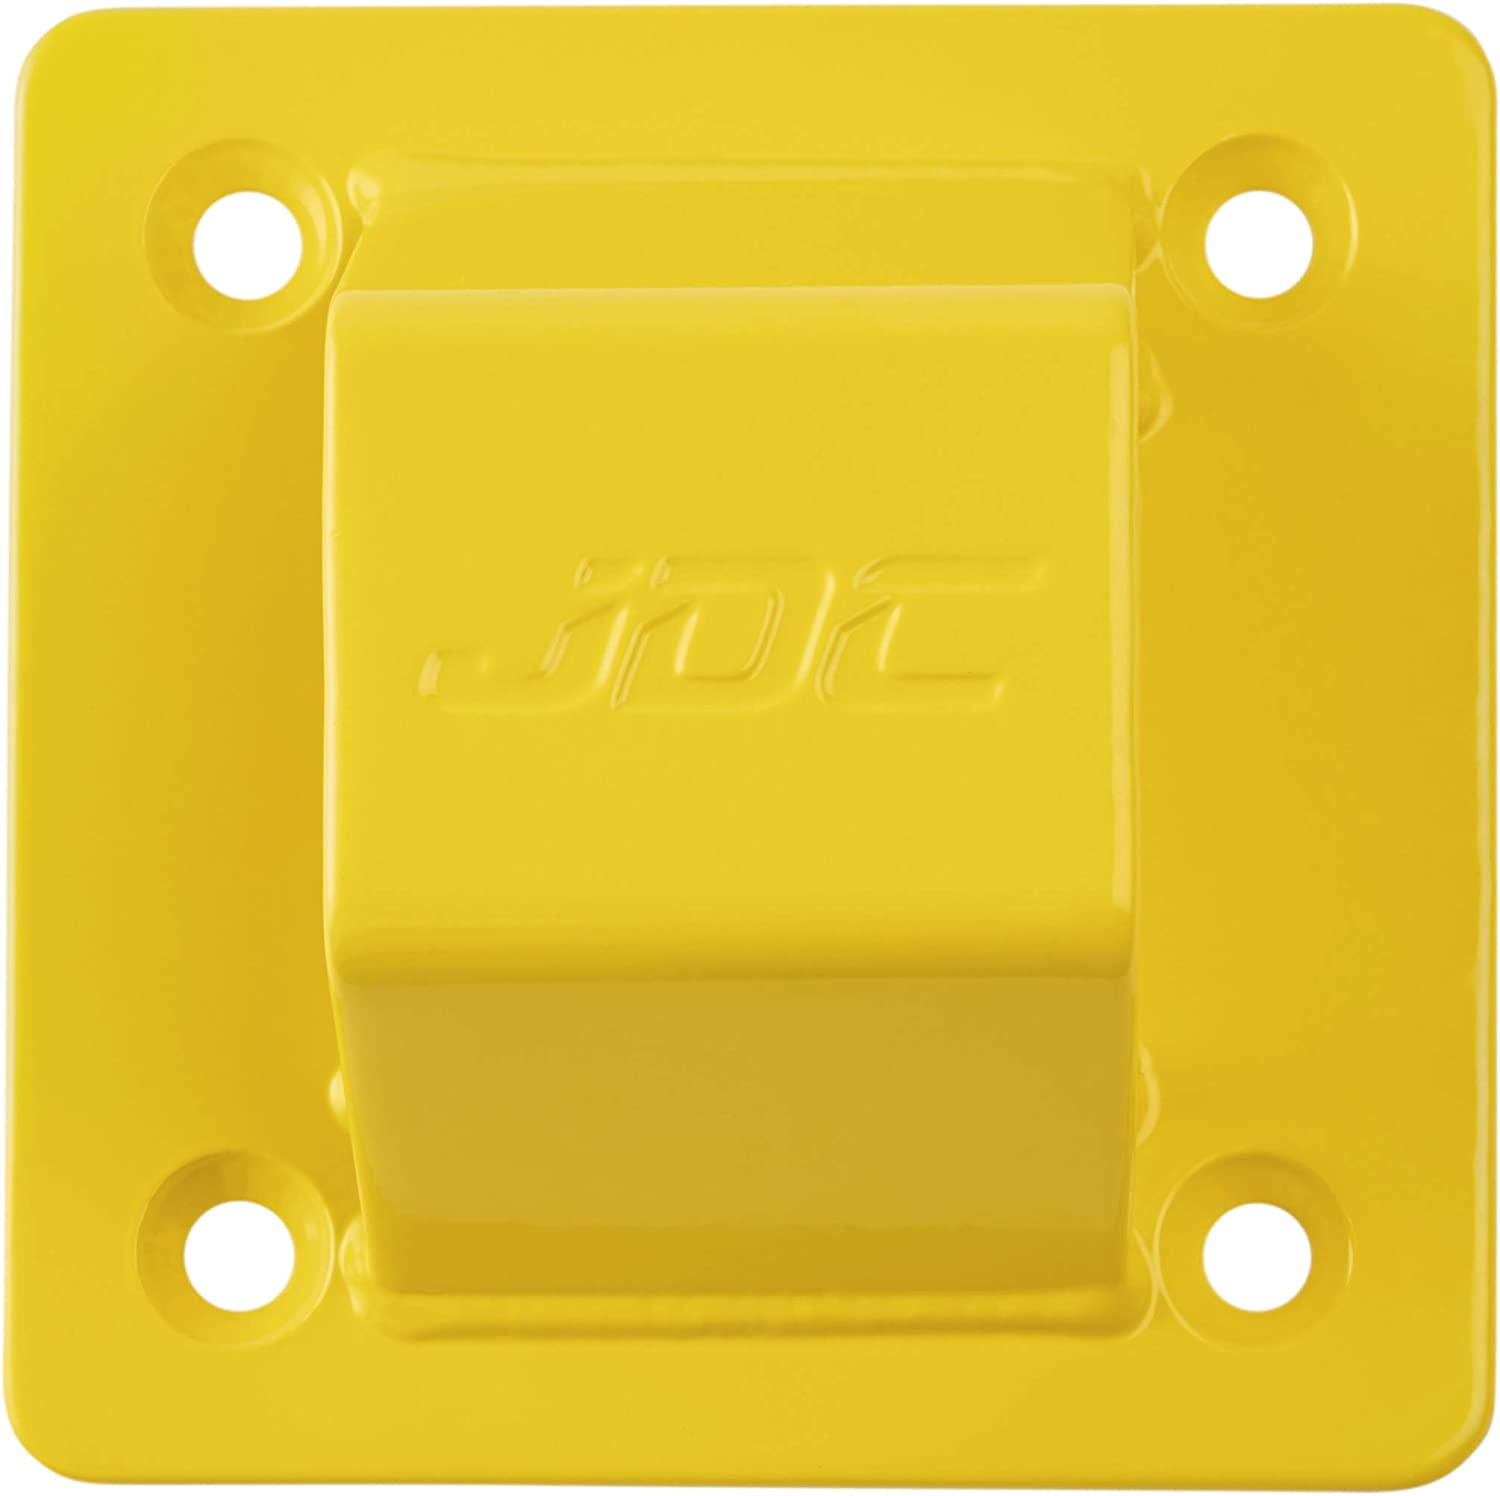 SPHERE JDC Motorcycle Ground Anchor Heavy Duty Hardened Steel Yellow